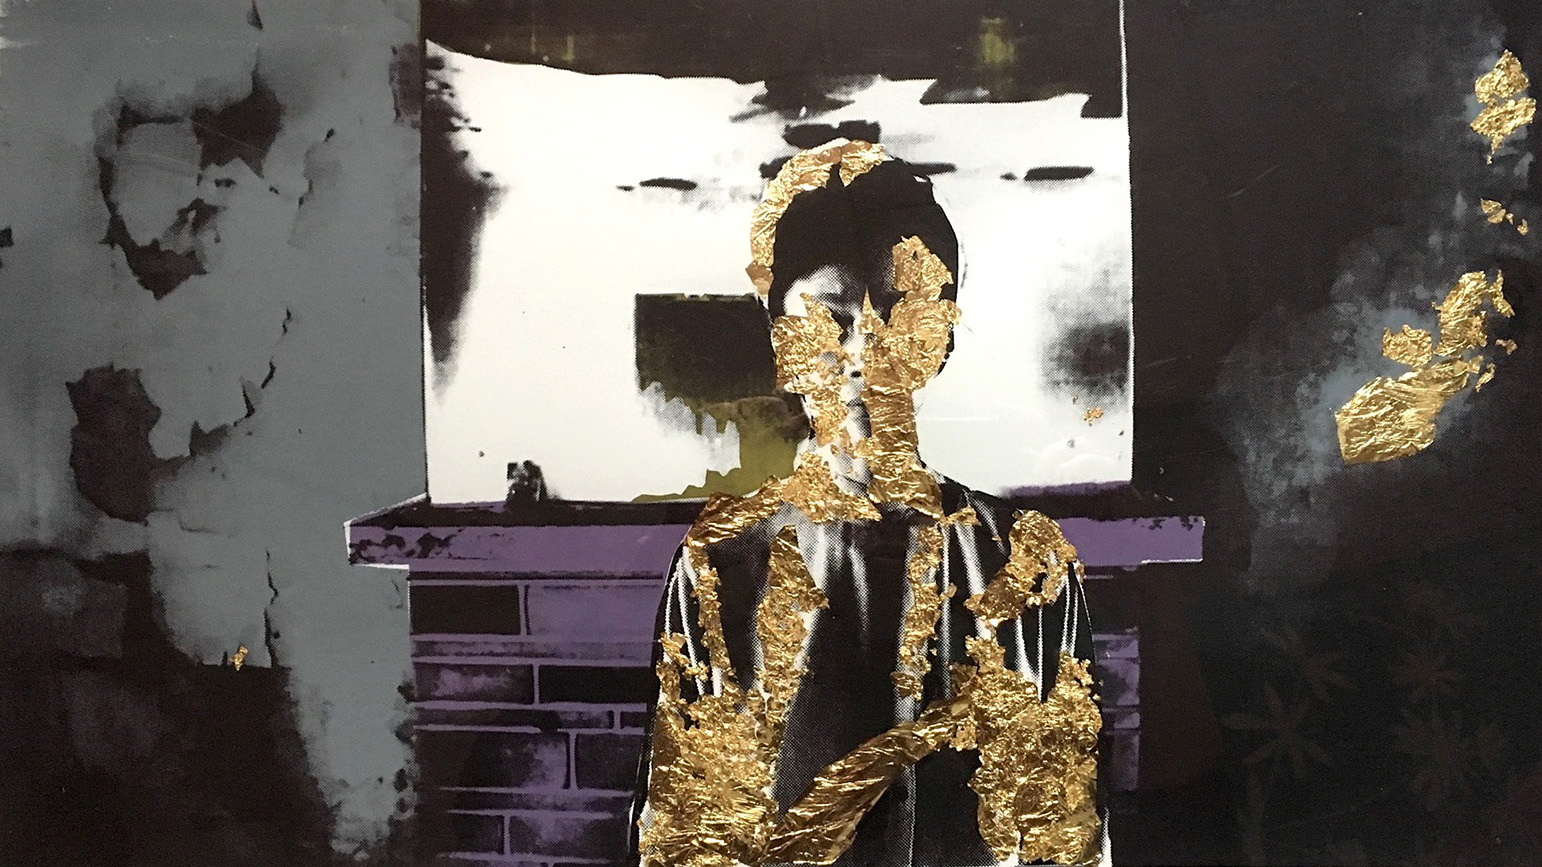 Screenprint of a woman standing in front of a fireplace with gold leaf